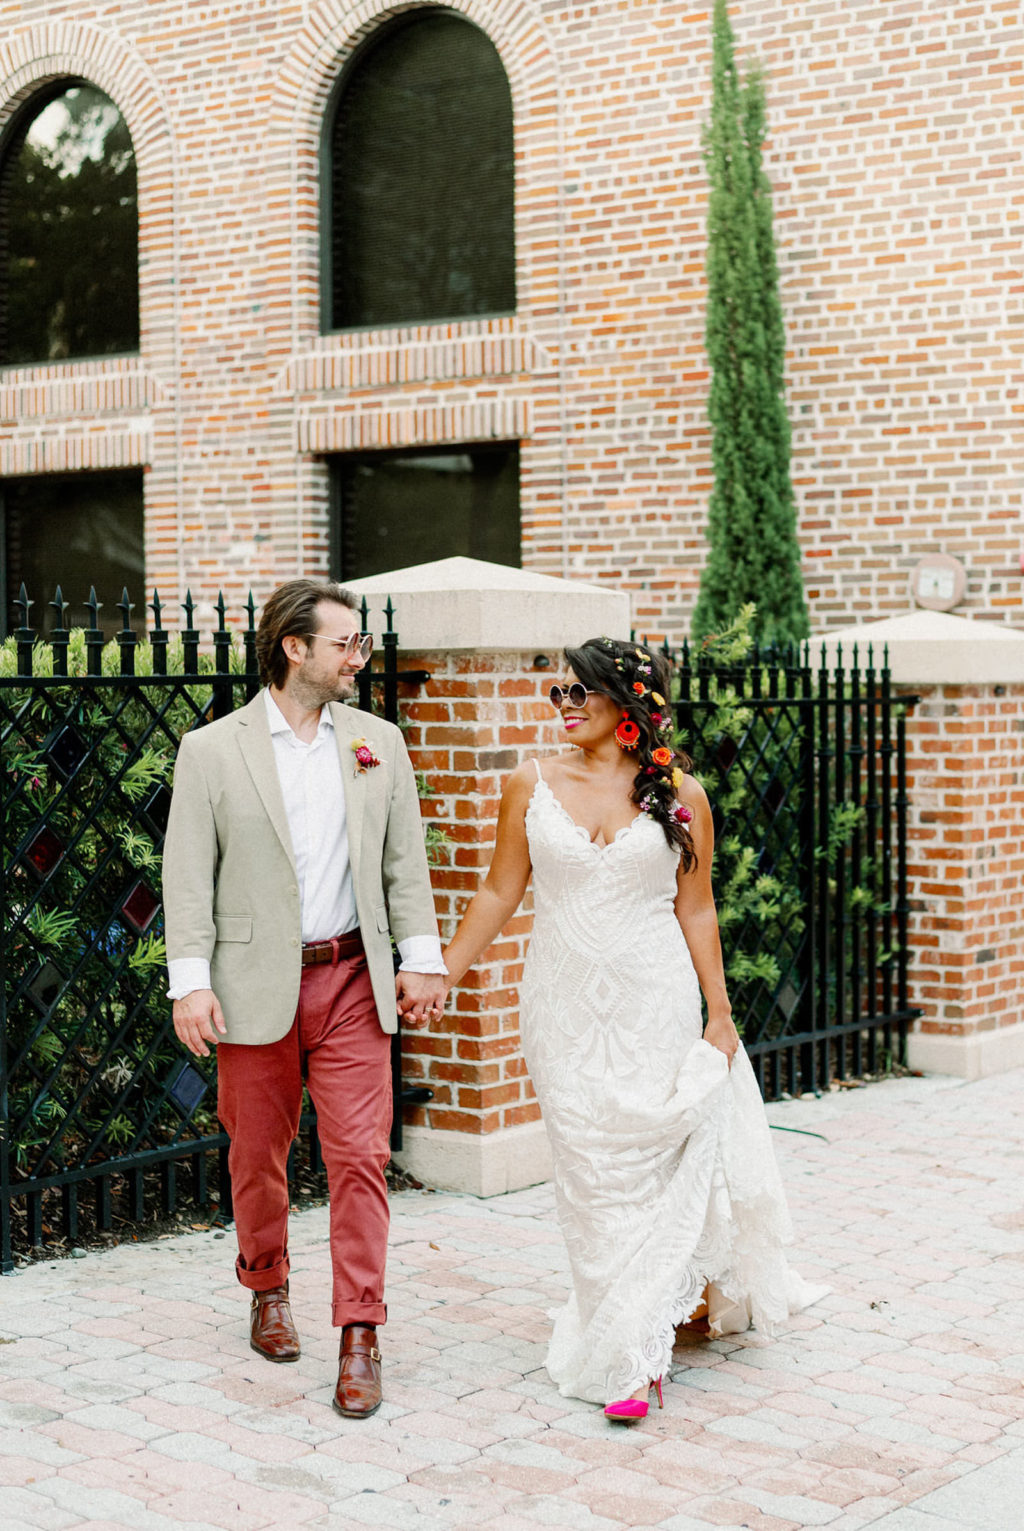 Whimsical Bride Wearing Lace Boho Spaghetti Strap and V Neckline Wedding Dress, Hair in Braid with Colorful Flowers and Sunglasses, Groom in Dusty Red Pants, Gray Suit Jacket and Red Retro Sunglasses   Tampa Bay Wedding Photographer Dewitt for Love   St. Pete Modern Industrial Wedding Venue Red Mesa Events